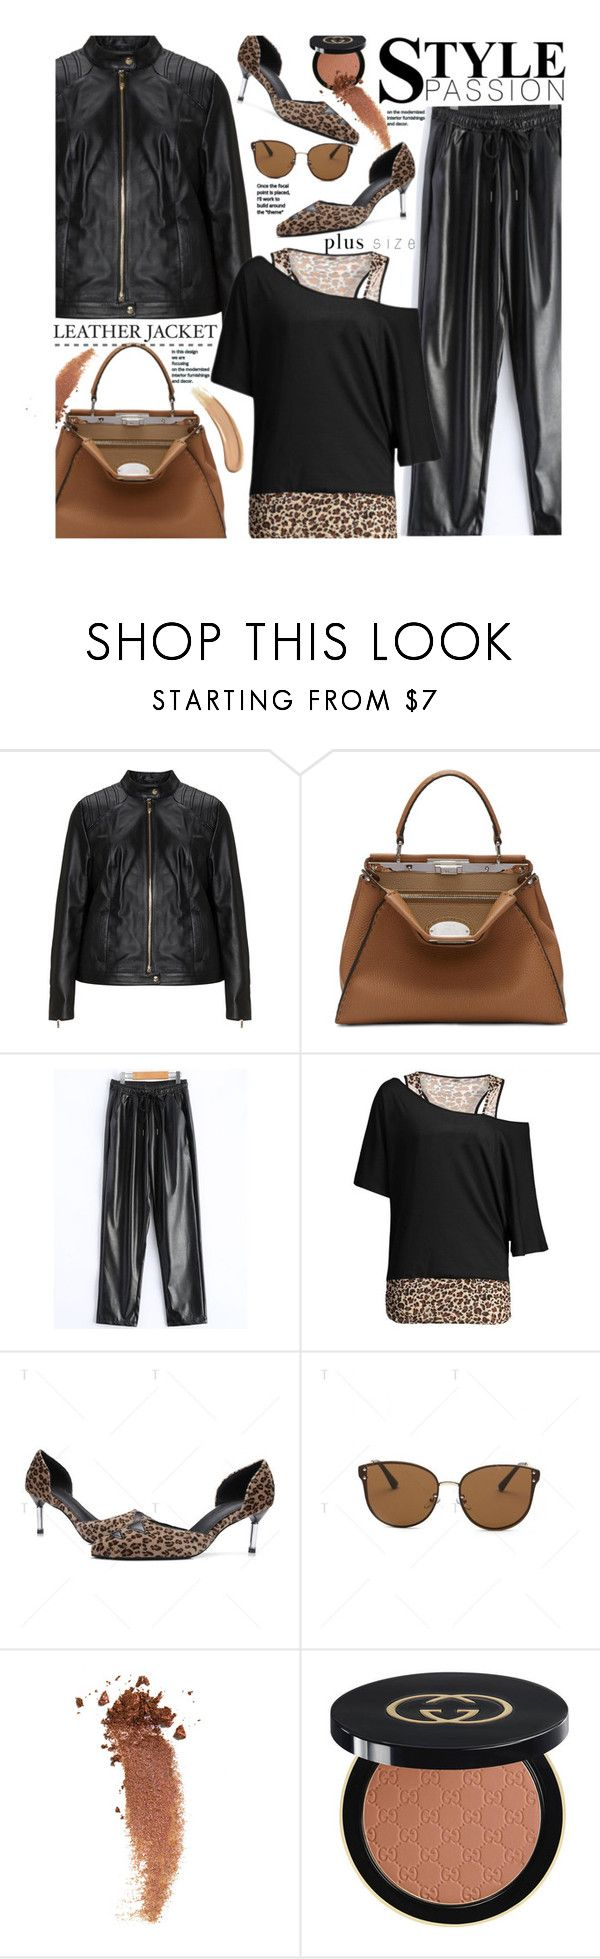 """""""Street Chic (plus size)"""" by beebeely-look ❤ liked on Polyvore featuring Jette, Fendi, Gucci, leatherpants, plussize, streetwear, StreetChic and twinkledeals"""